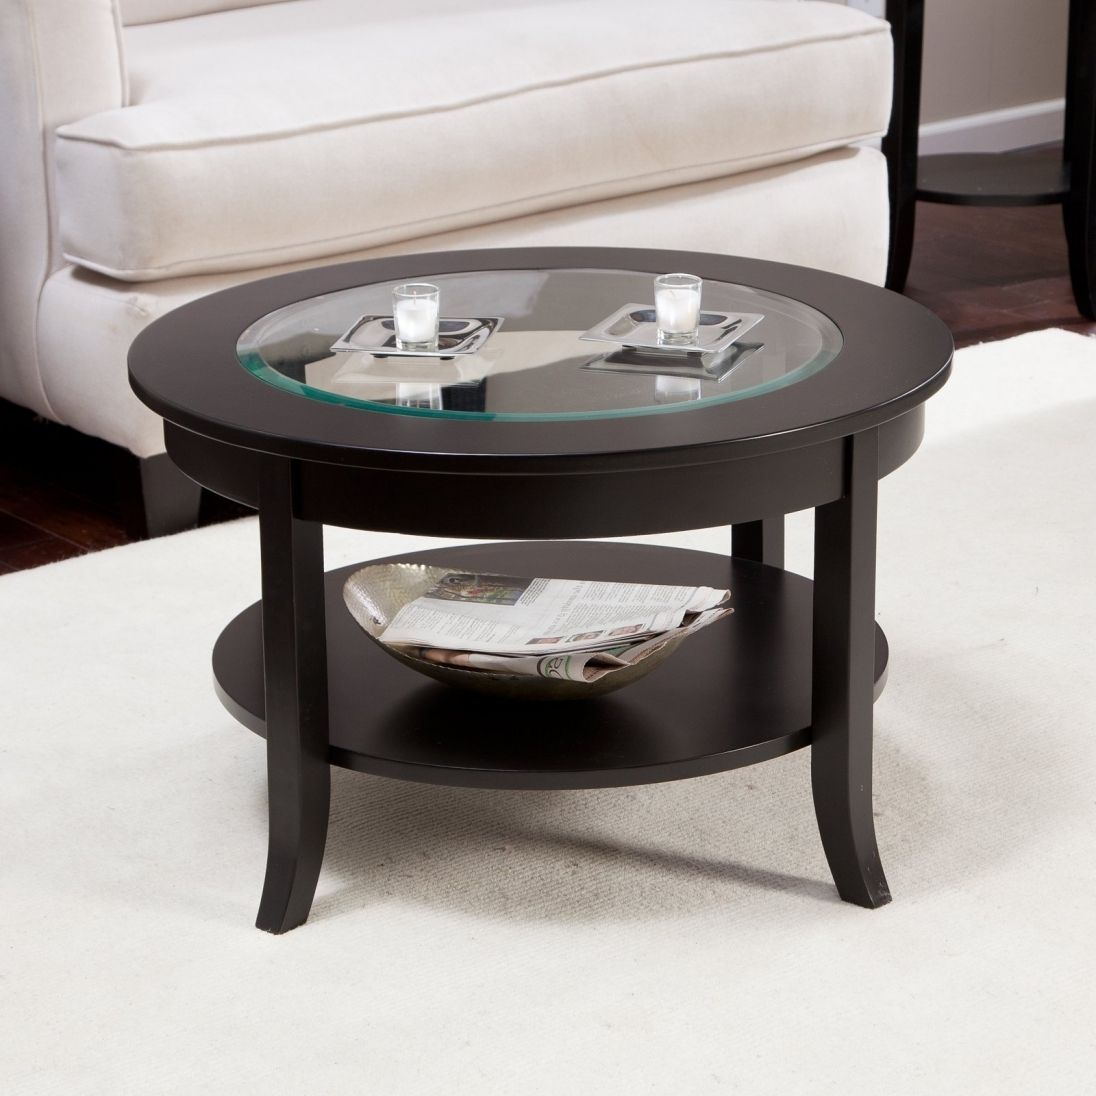 Glass Coffee Table Display Best Paint For Interior Check More At Http Www Buzzfolders Com Glass Co Coffee Table White Round Coffee Table Used Coffee Tables [ 1096 x 1096 Pixel ]